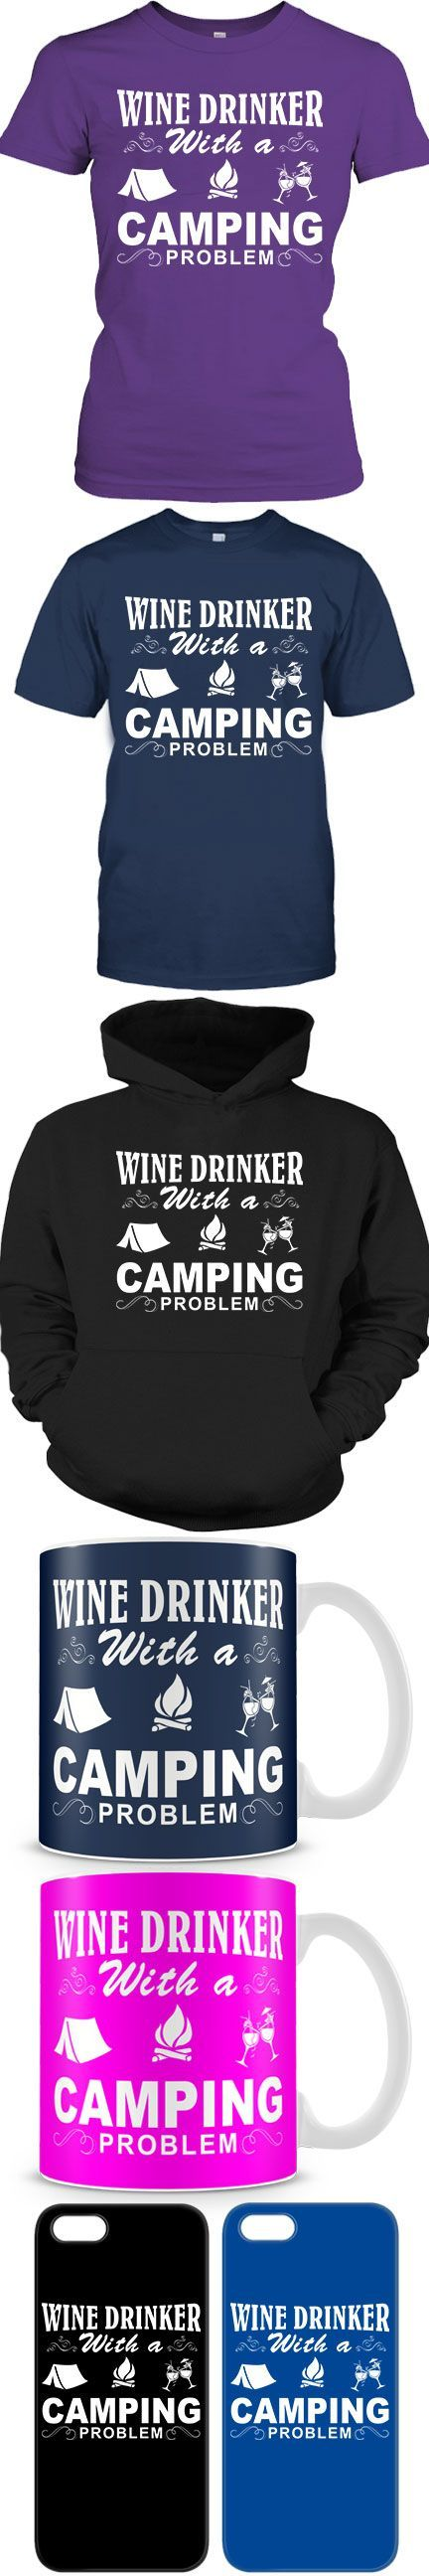 Wine drinker with a camping problem